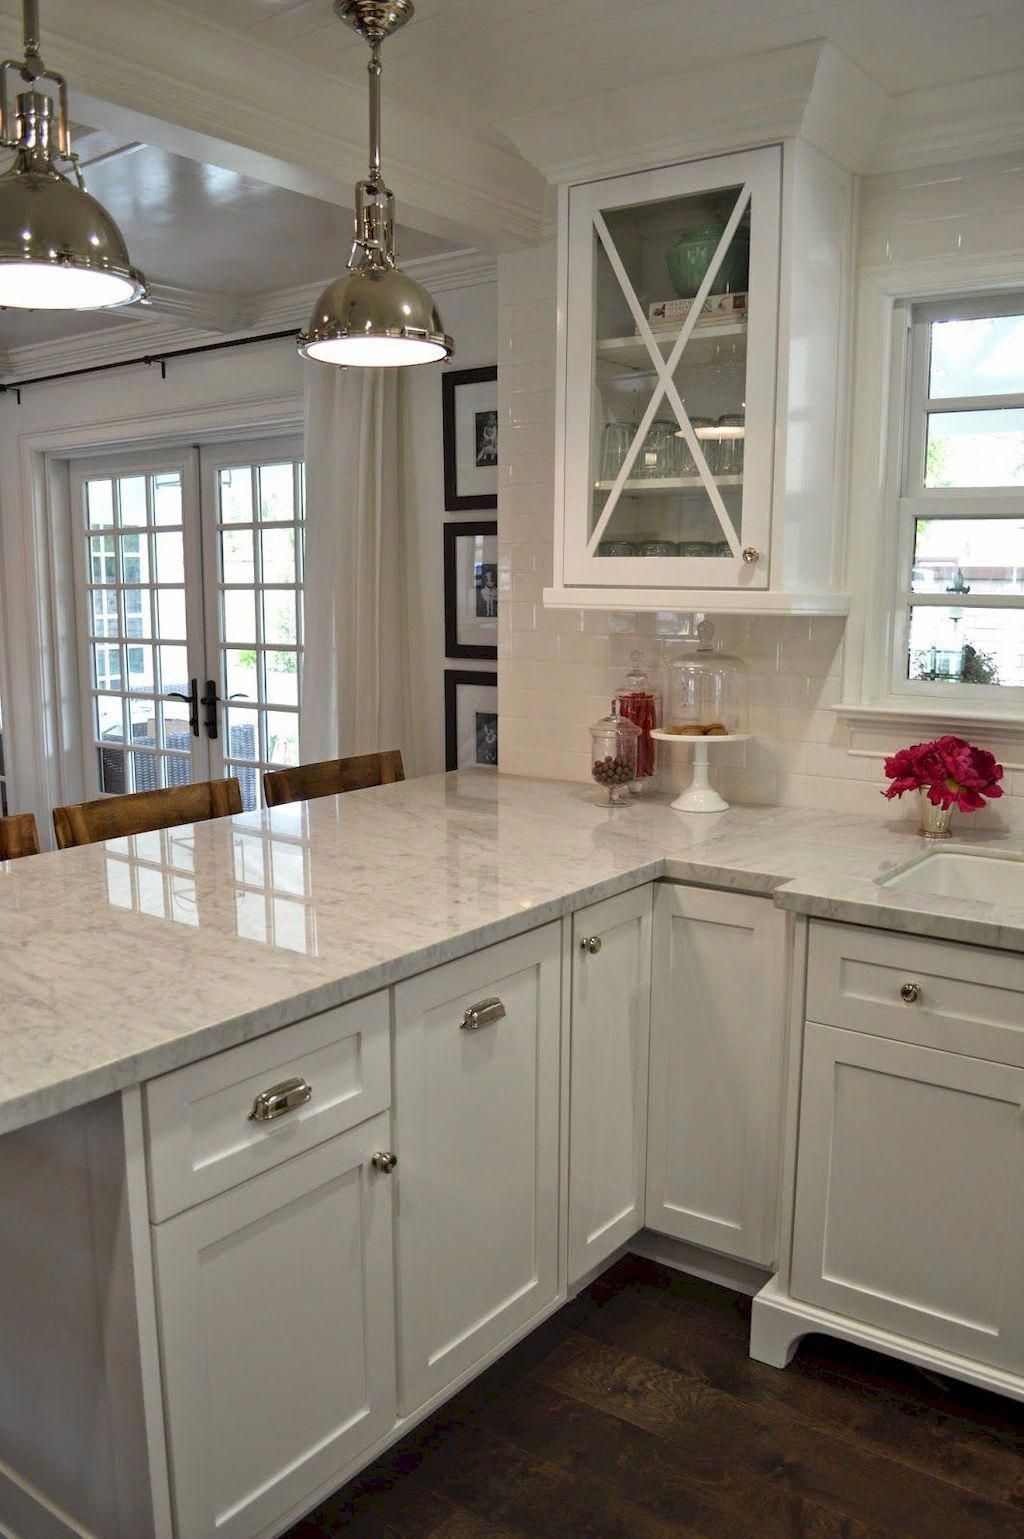 The 12 Best Small Kitchen Remodel Ideas, Design & Photos #smallkitchenremodeling